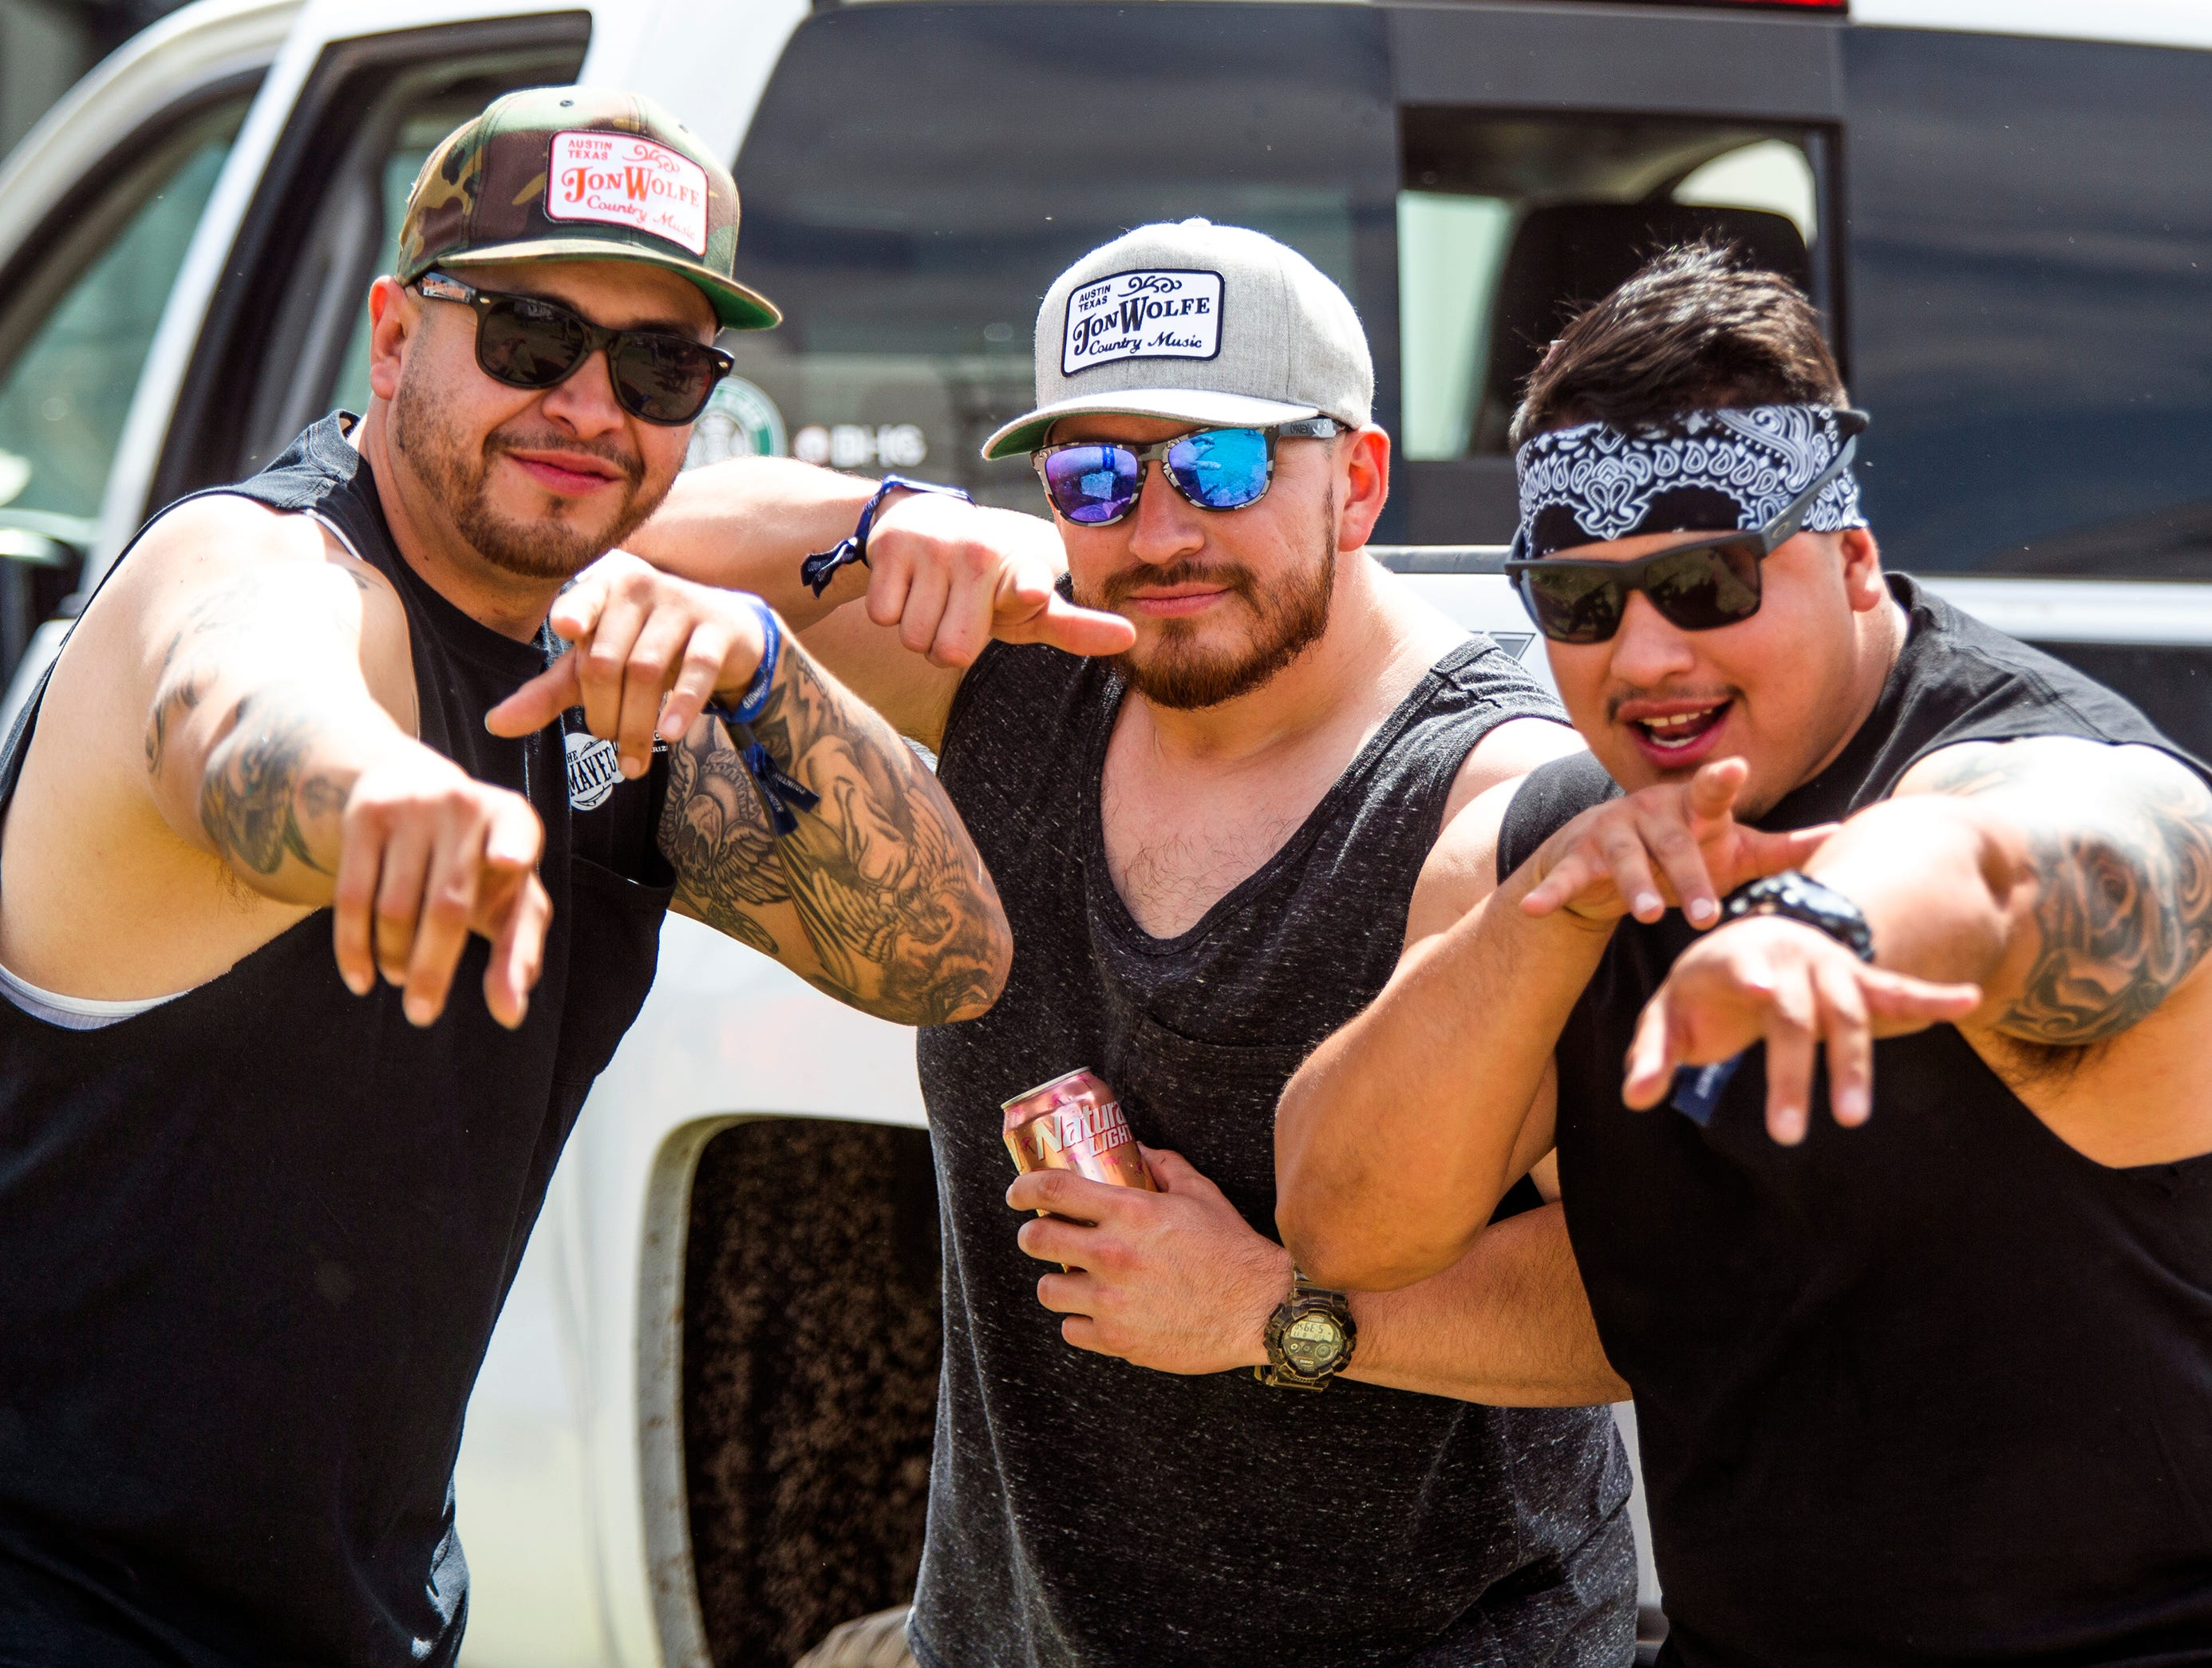 Half-brothers from Tucson enjoy themselves at Country Thunder Arizona 2019 near Florence, April 11, 2019. From left to right are; Rob Borquez, 28, Nathan Velador, 30, and Anthony Weeks, 28.